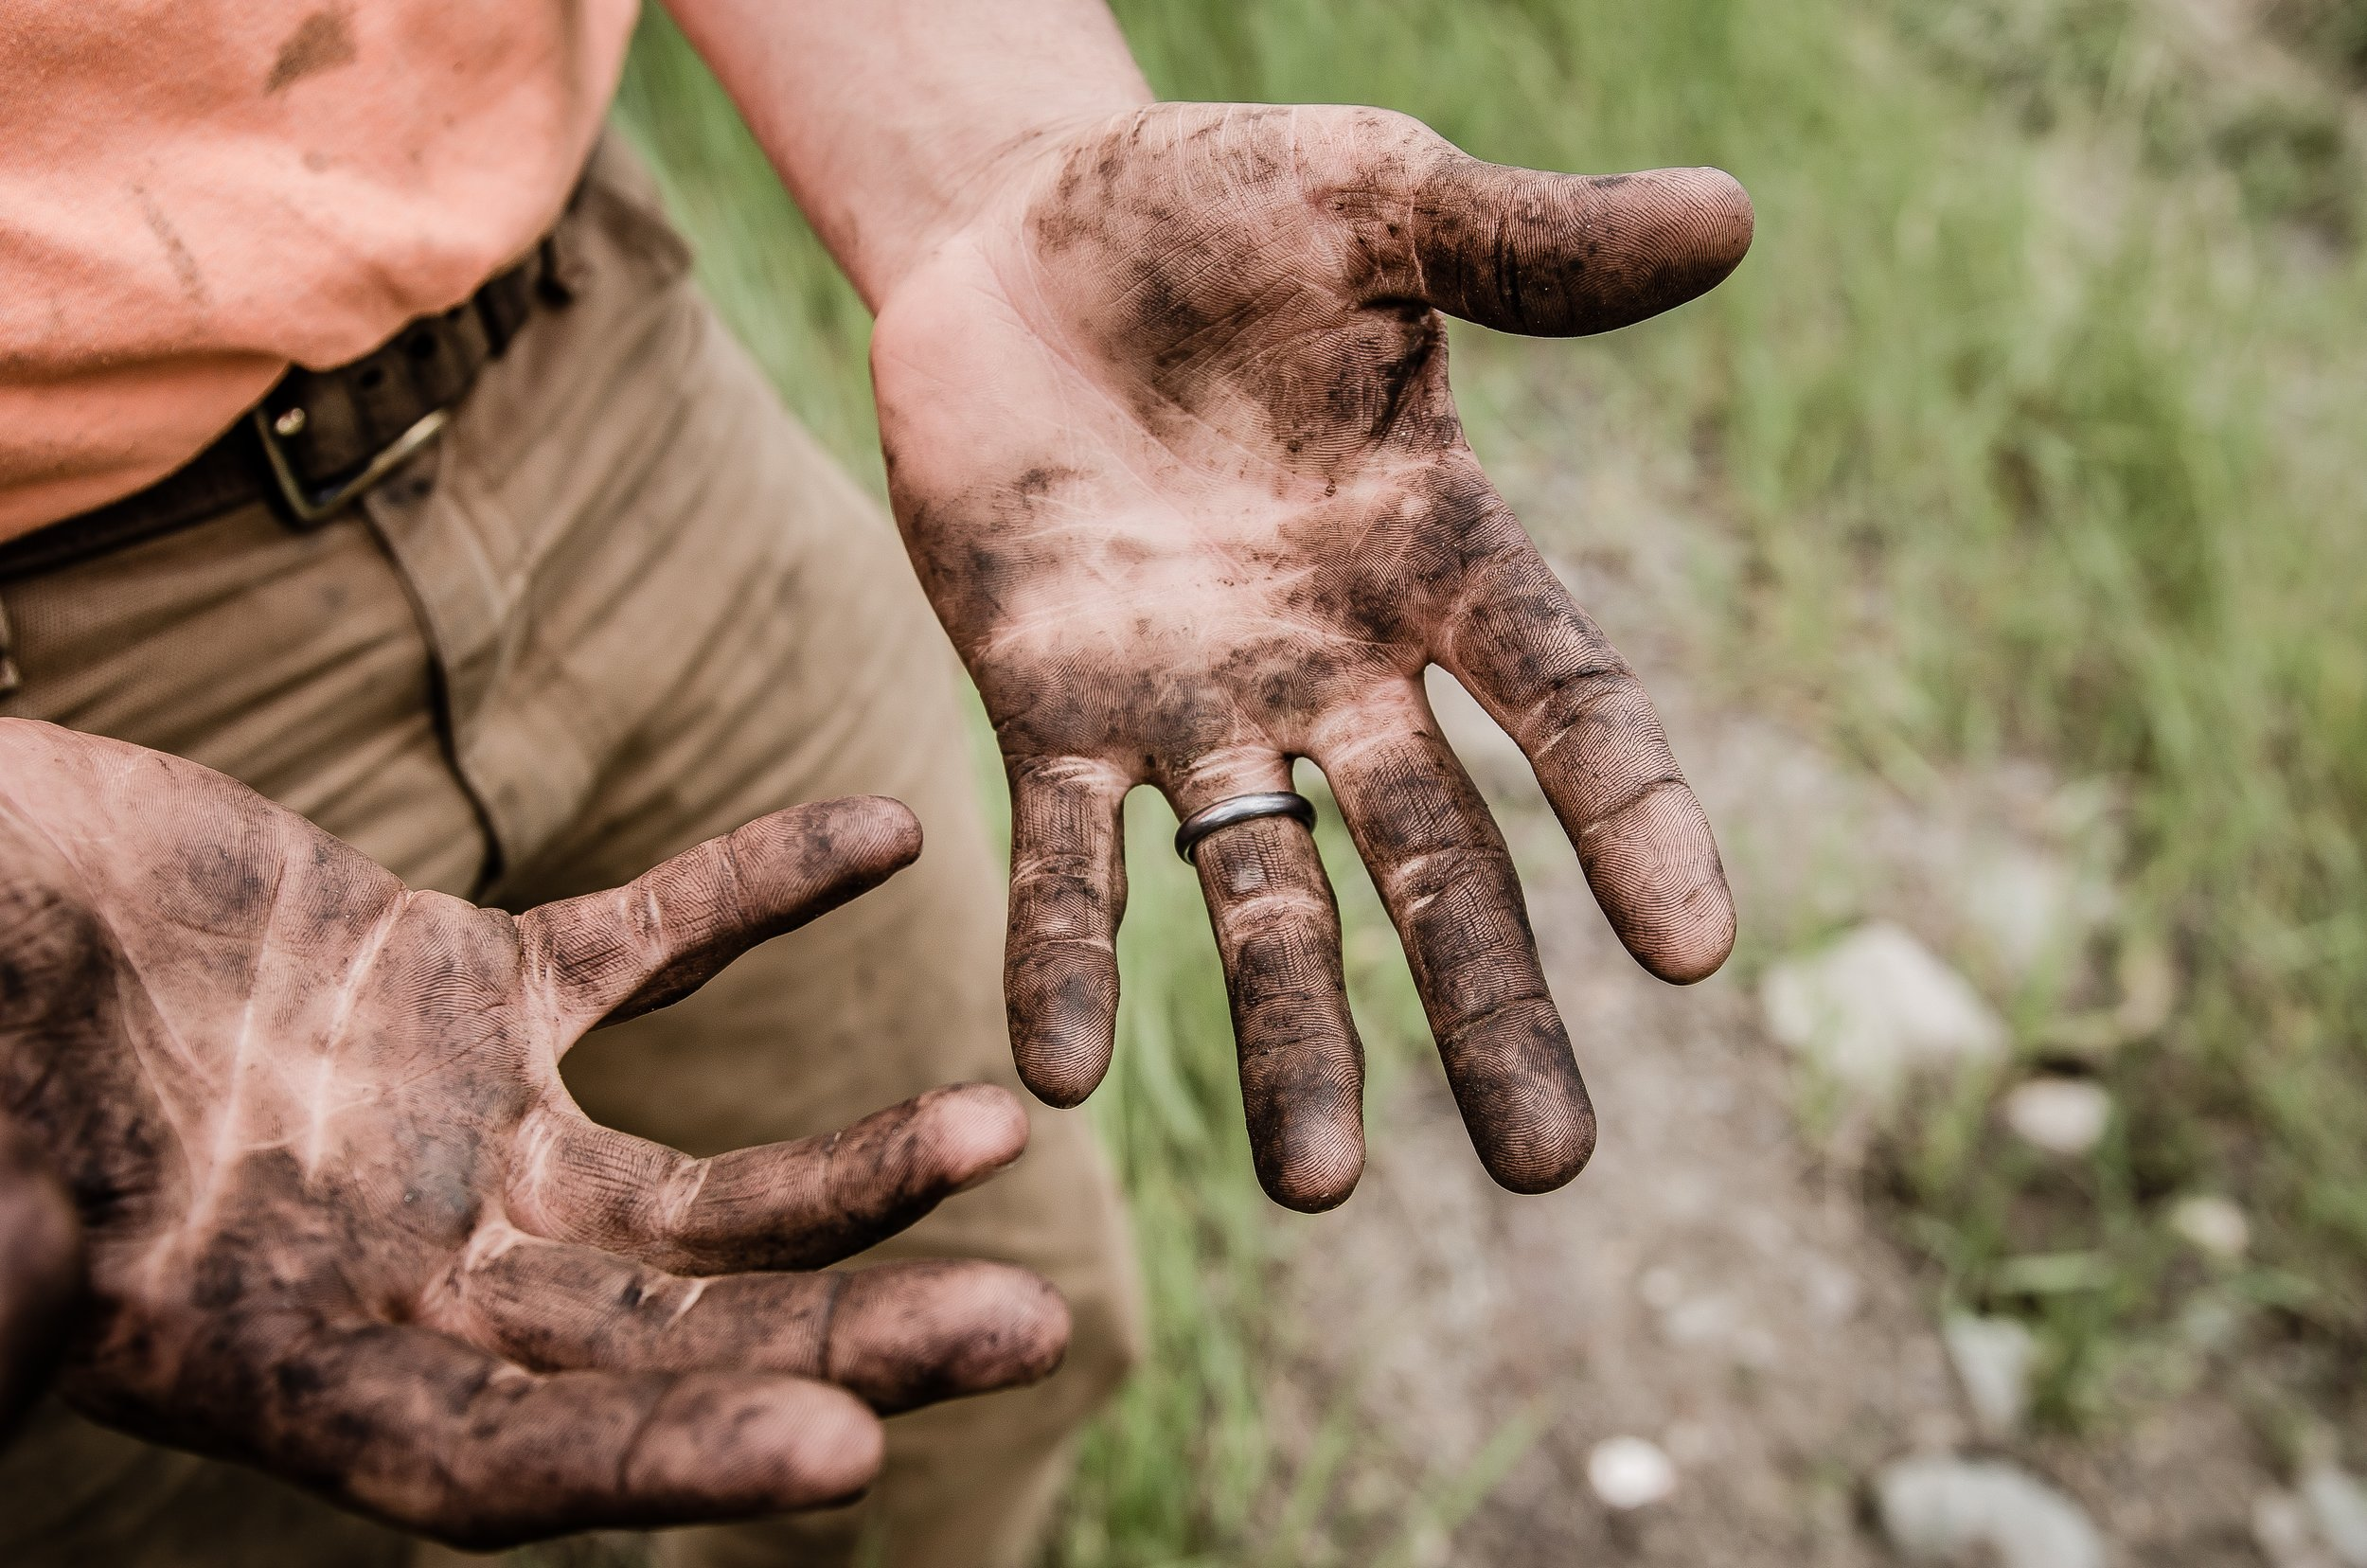 Muck in... - We currently need Pitt Crew volunteers, Associates and Directors Find out more here